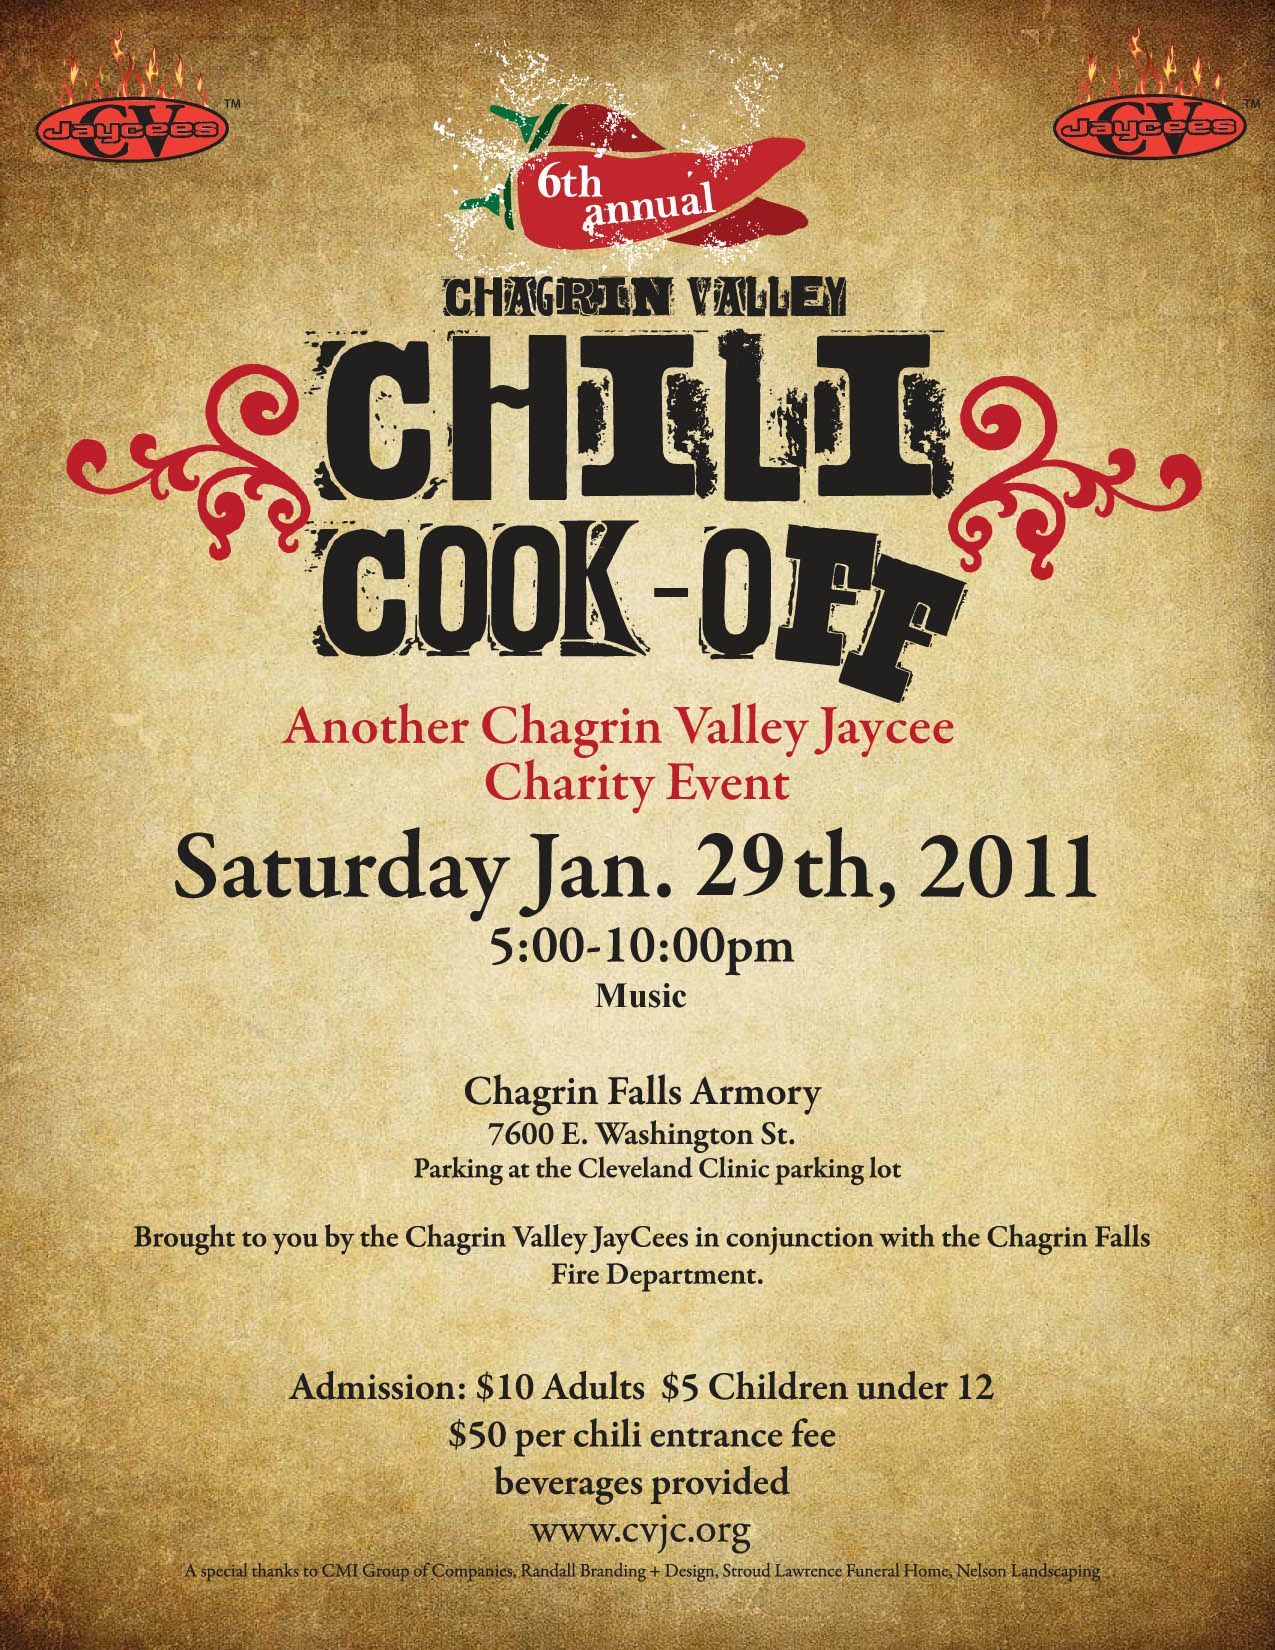 Chili Cook Off Flyer Template Free Printable - WOW.com - Image ...